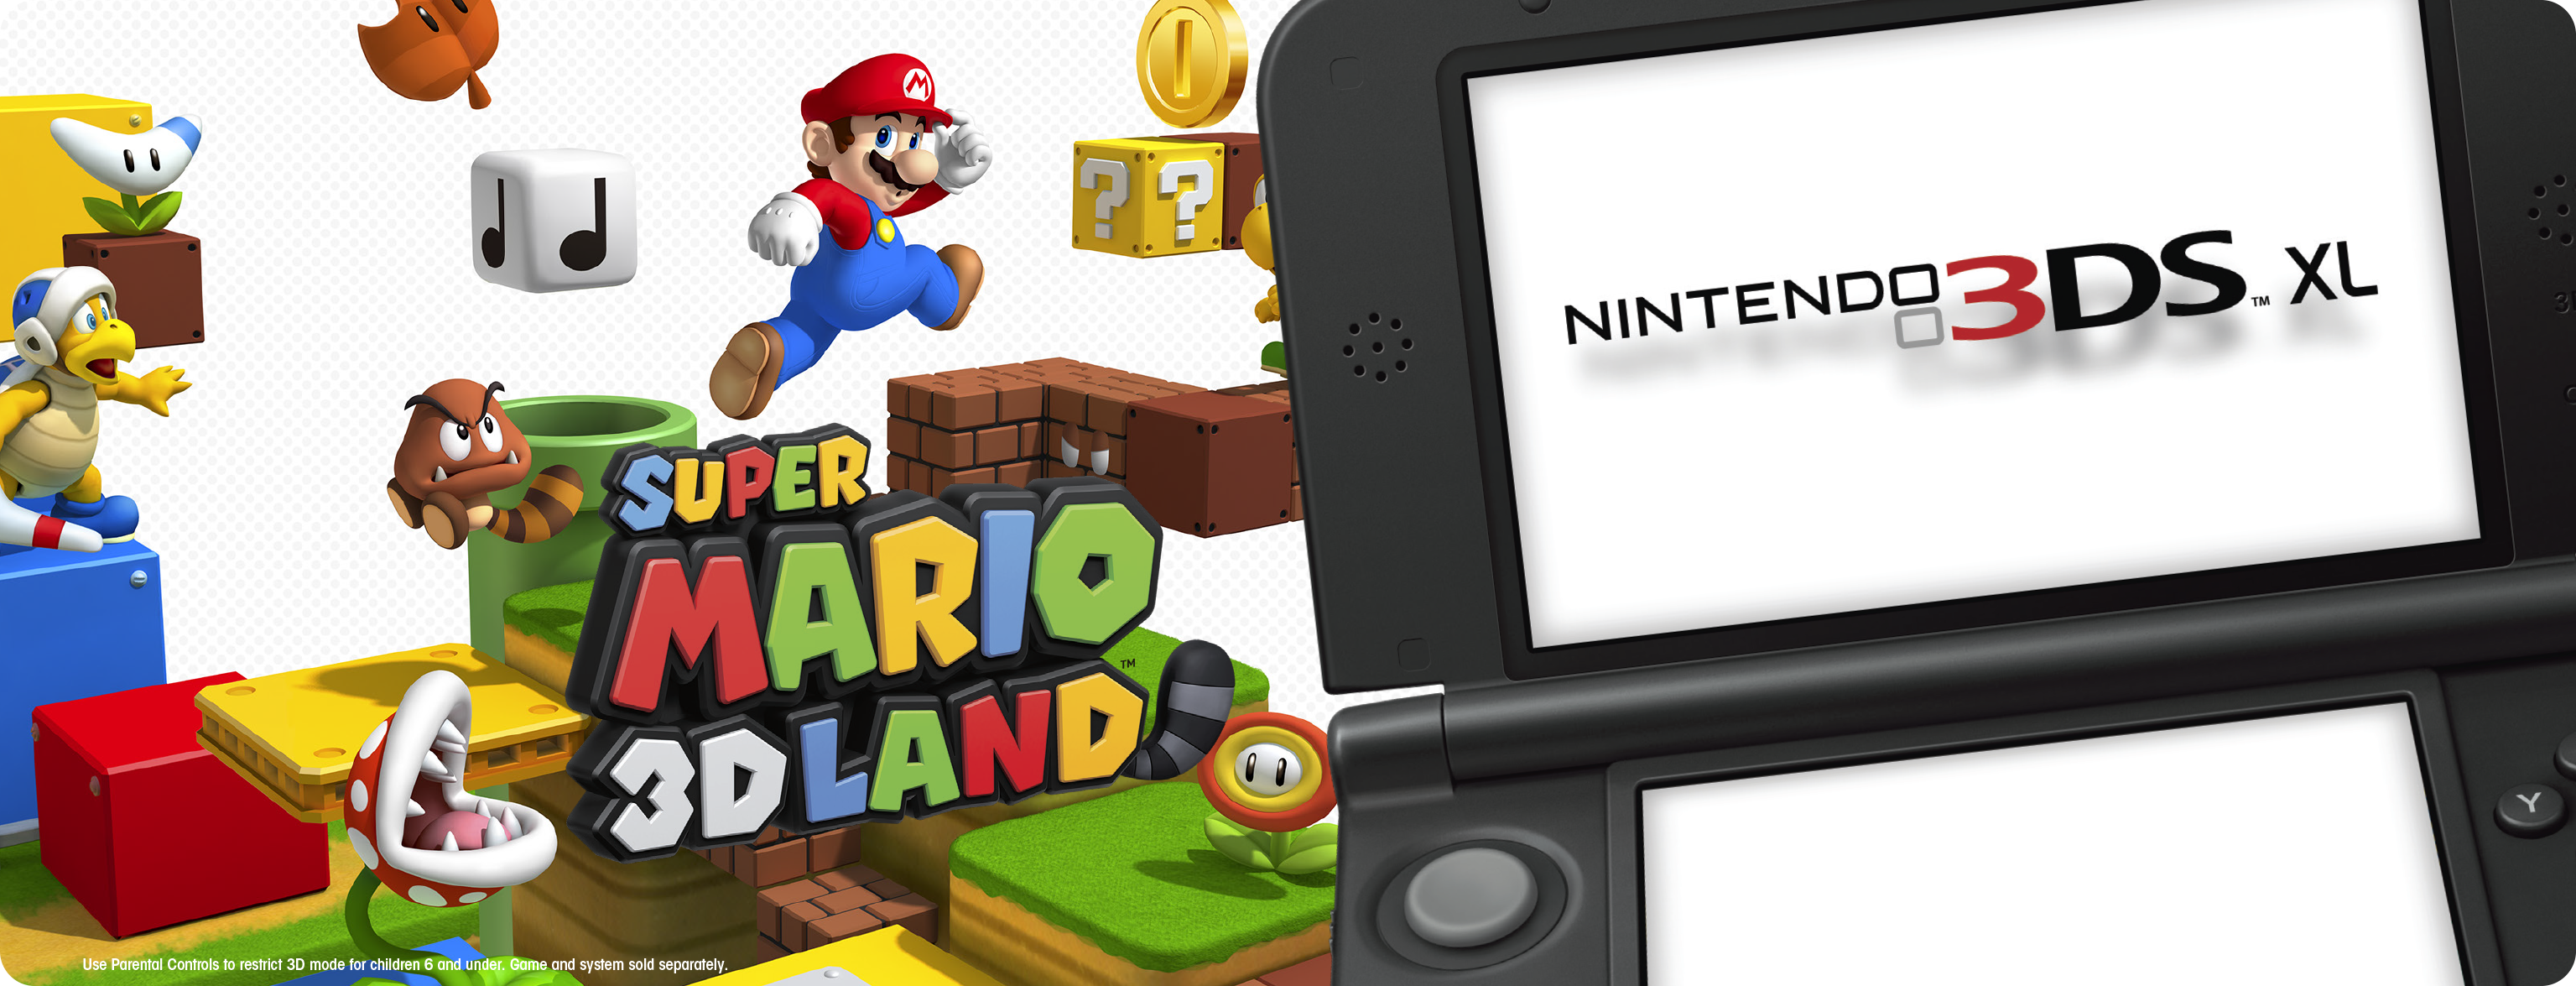 Hero Image-Nintendo 3DS XL-Super Mario 3D Land-US